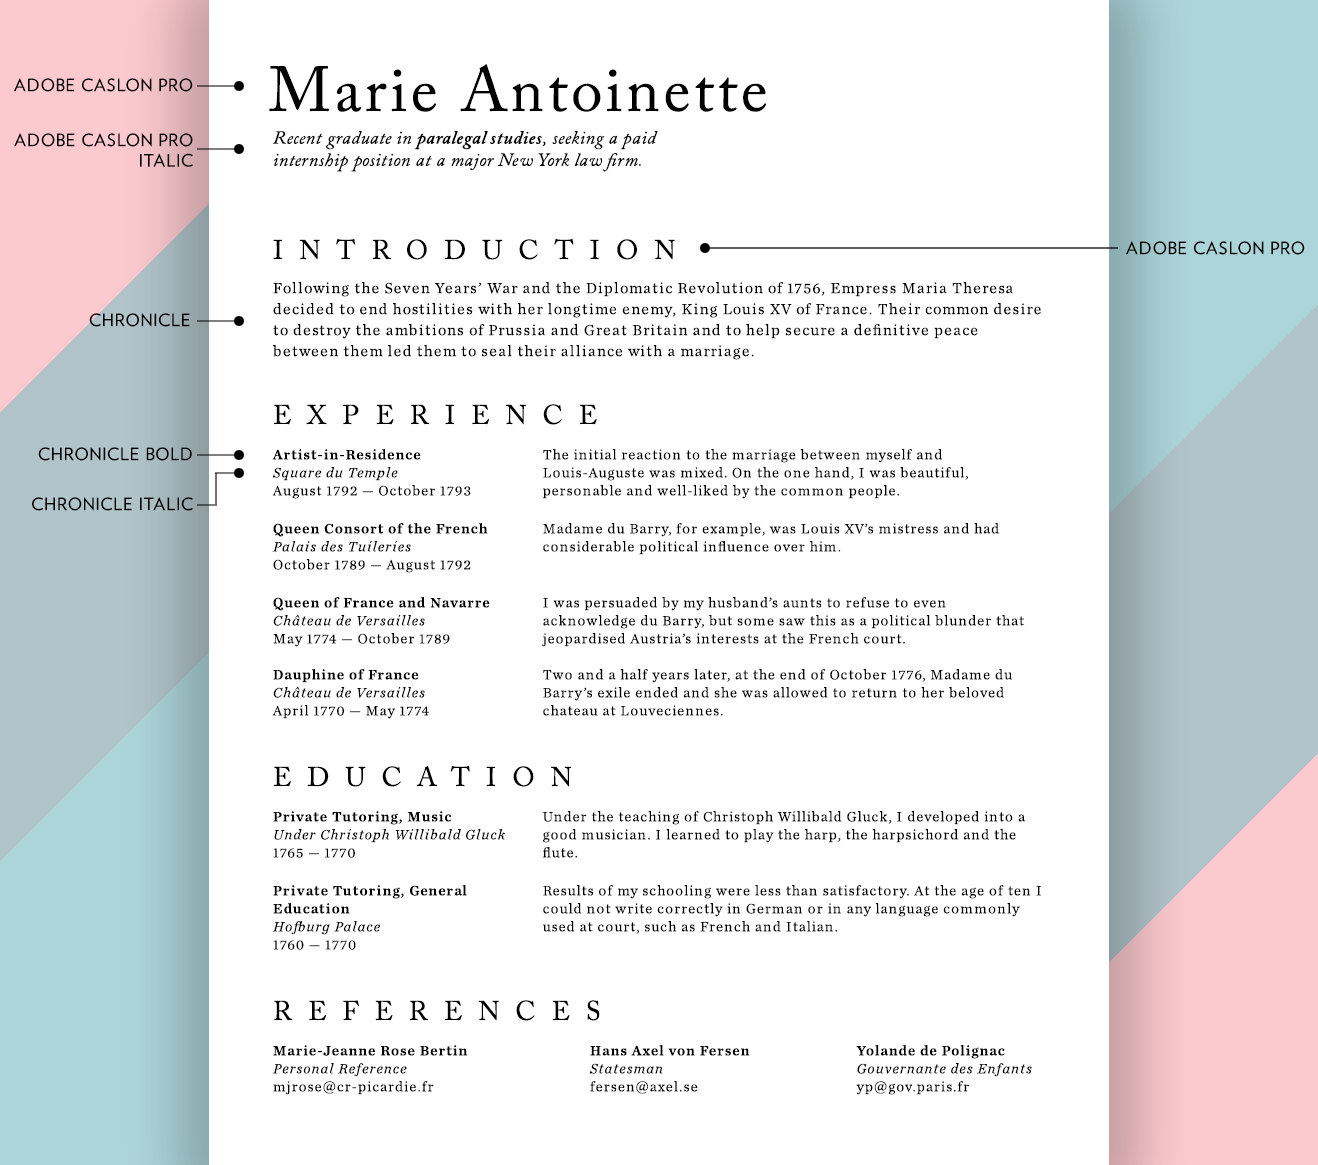 Superior Geometric Sans Serif Fonts With Fonts For A Resume